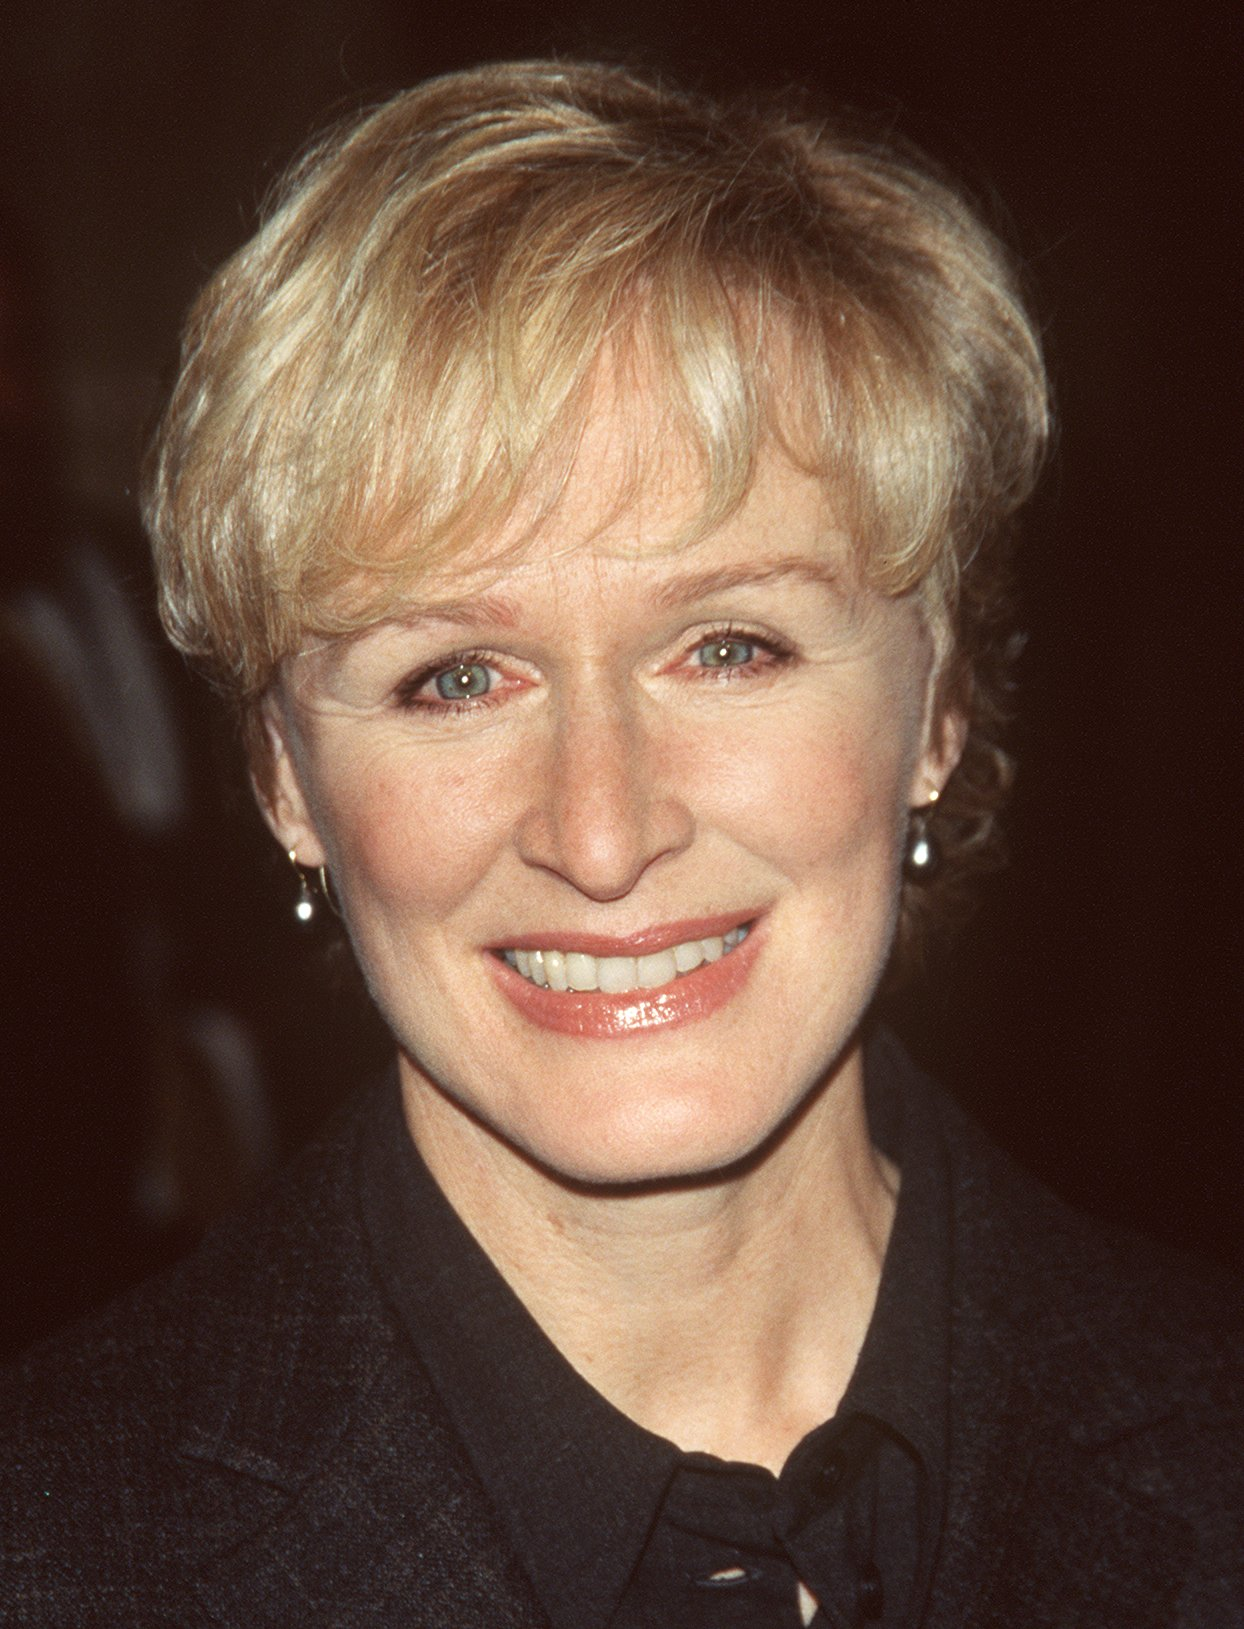 Glenn Close Images Glenn Close Hd Wallpaper And Background Photos 32502775